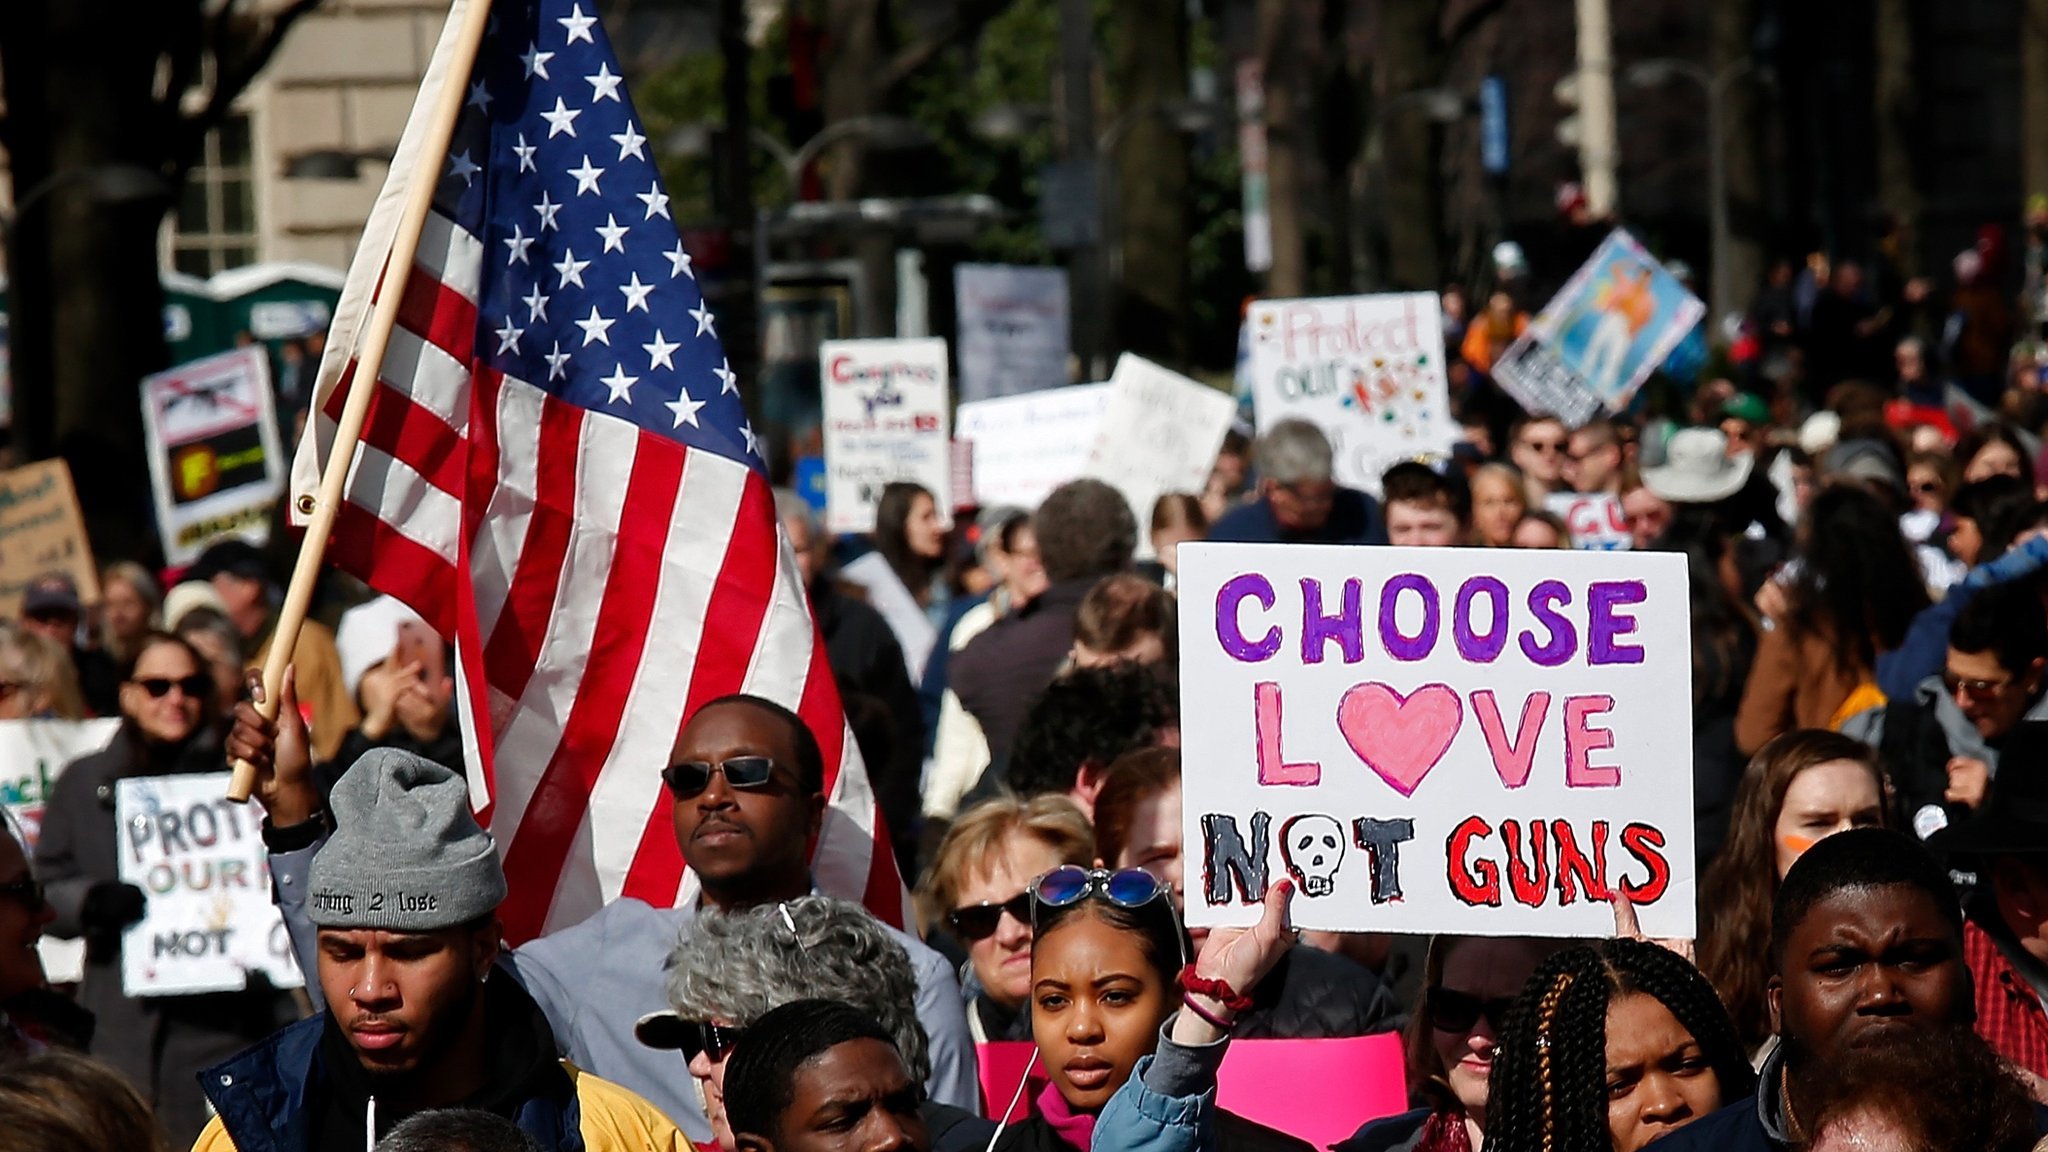 March For Our Lives: Mass rallies on US gun control under way